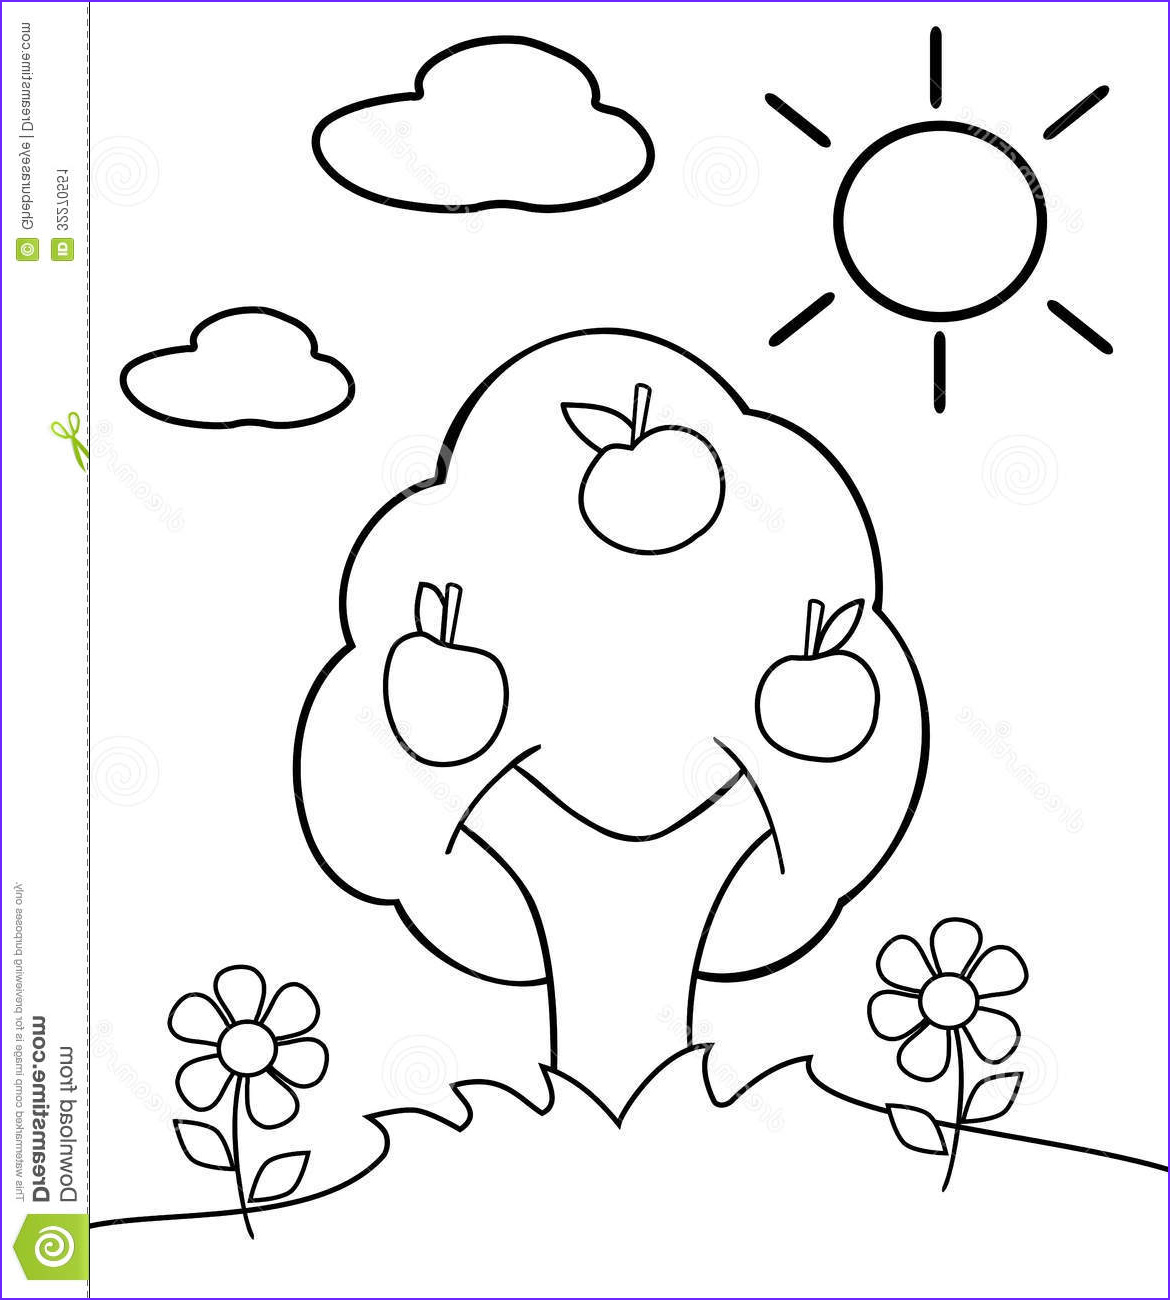 stock image coloring tree image representing meadow cartoon version project thought to be colored children image